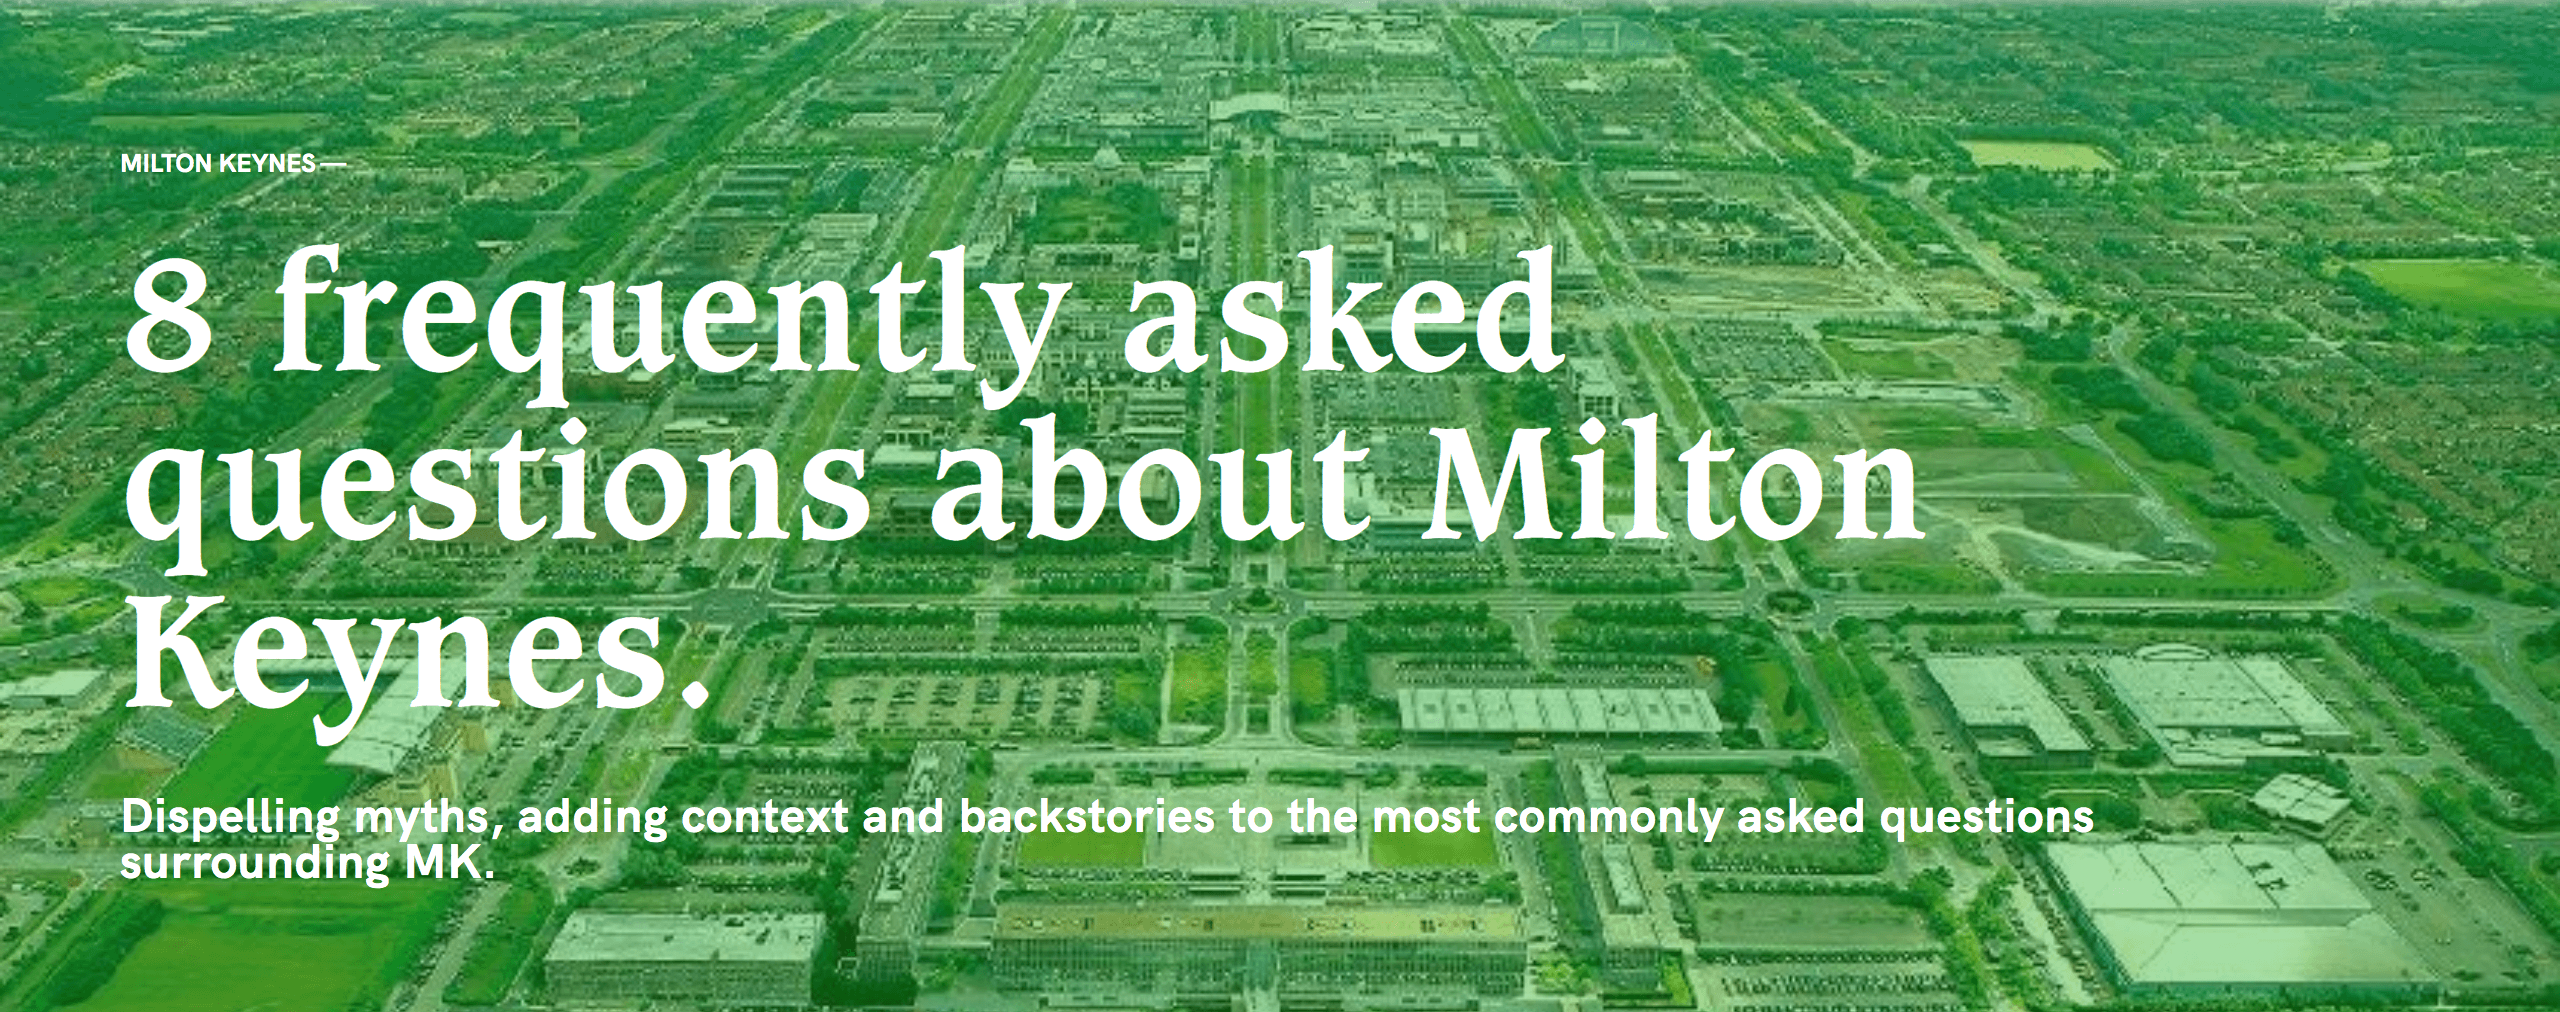 milton keynes frequently asked questions cover image